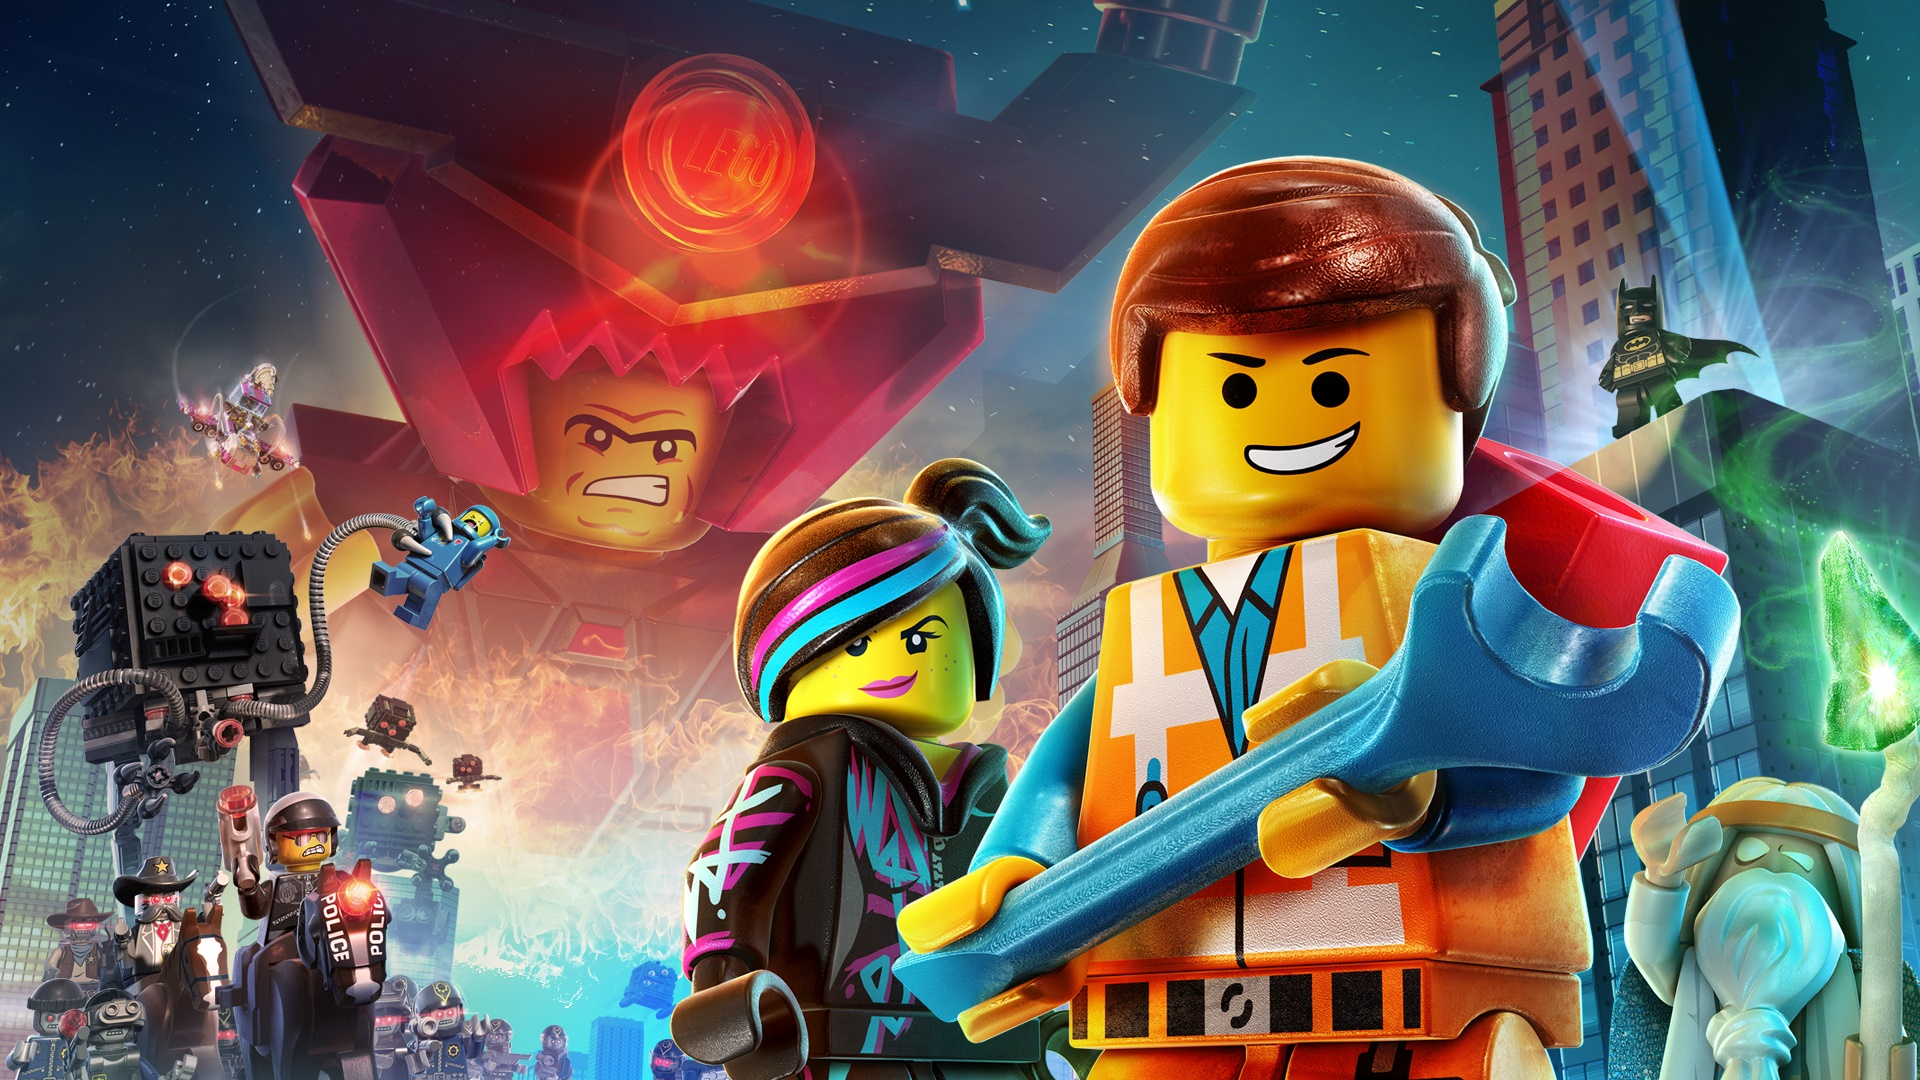 The Lego Movie 2014 Movie 1564.64 Kb